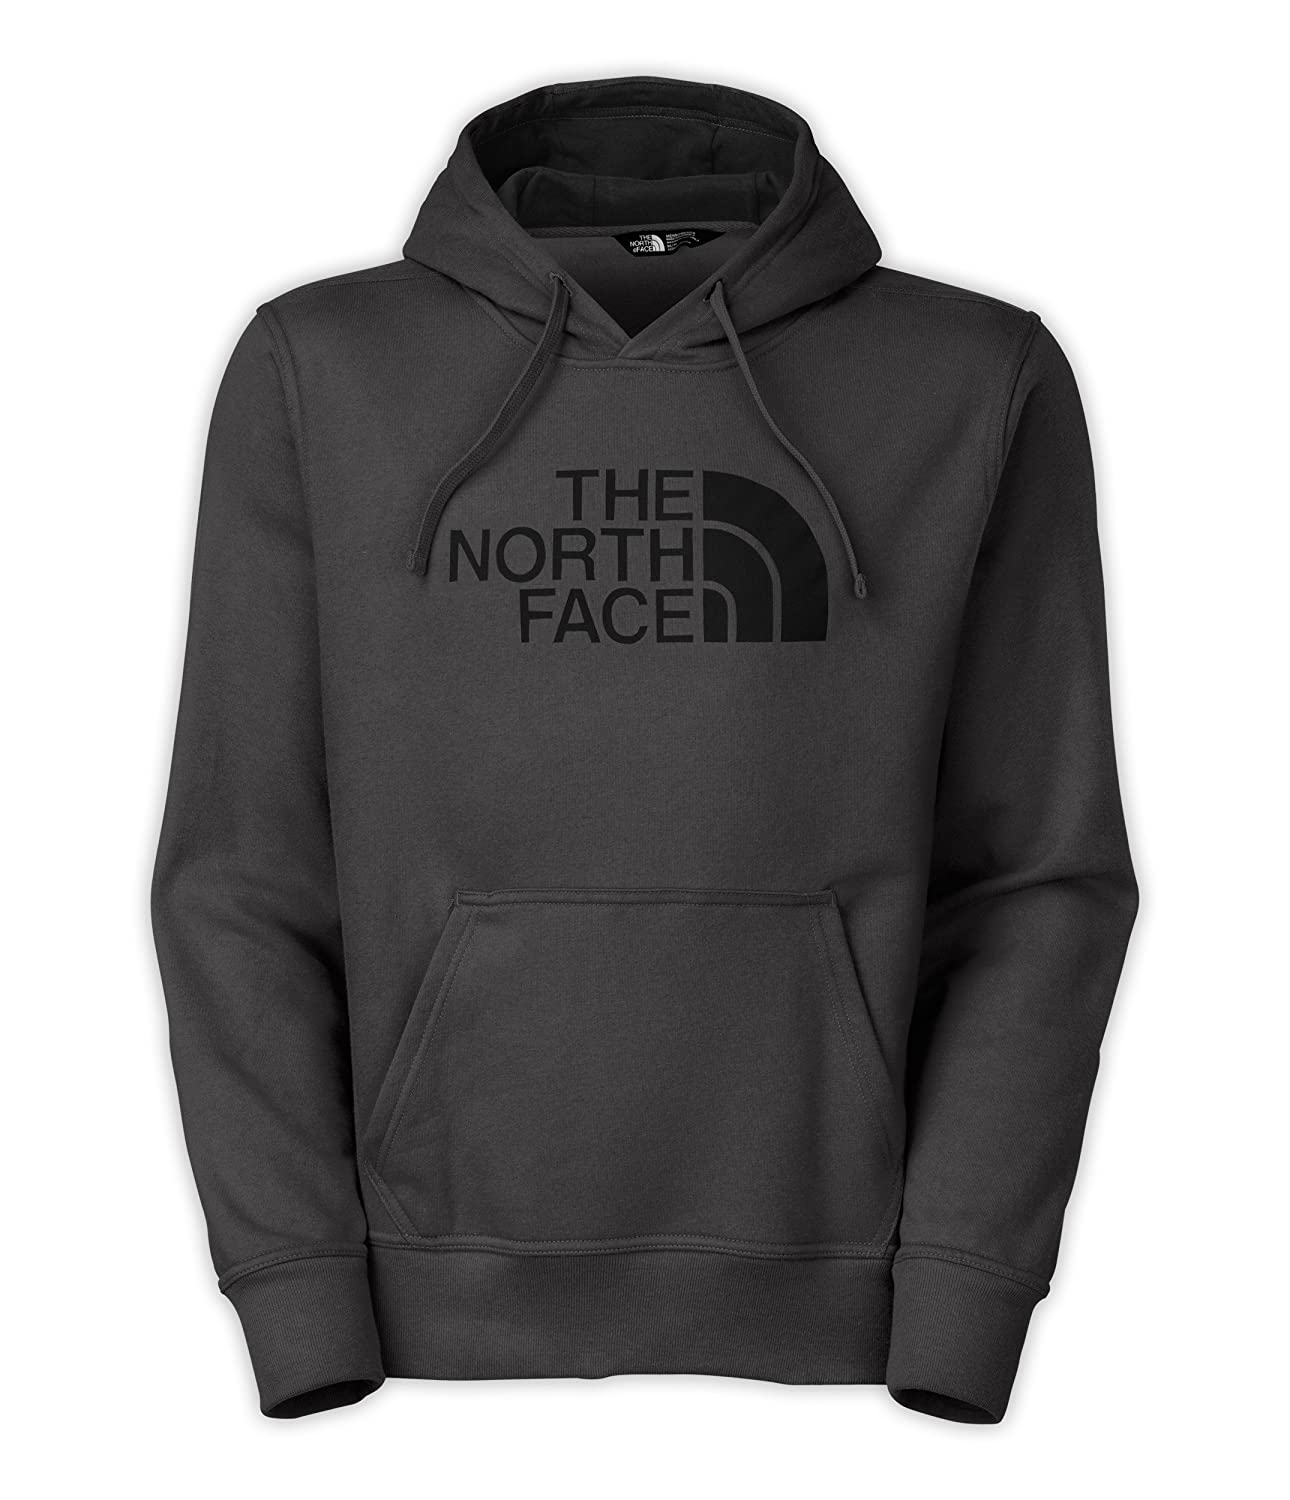 The North Face ABIS_SPORTS メンズ B014V34I7C M|Asphalt Grey/TNF Black Asphalt Grey/TNF Black M